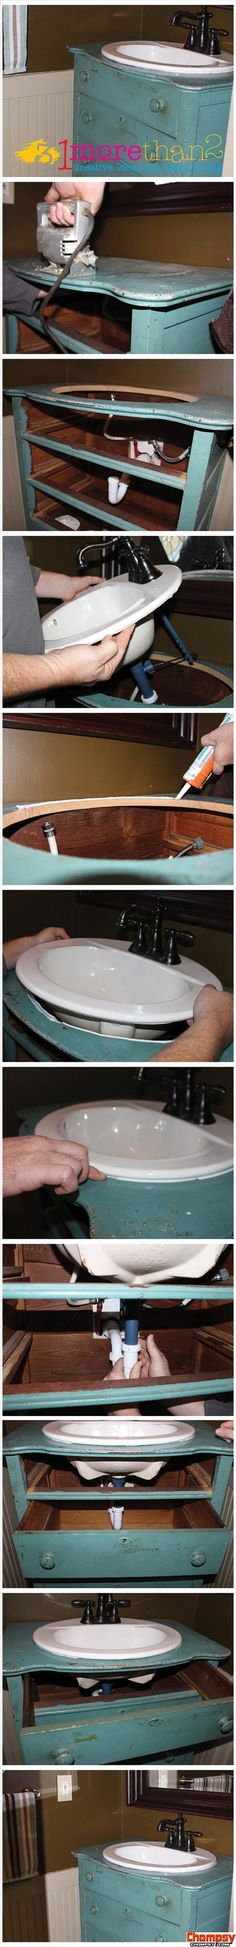 A funny picture of make bathroom sink out ofunny photos a dresser fun home ideas